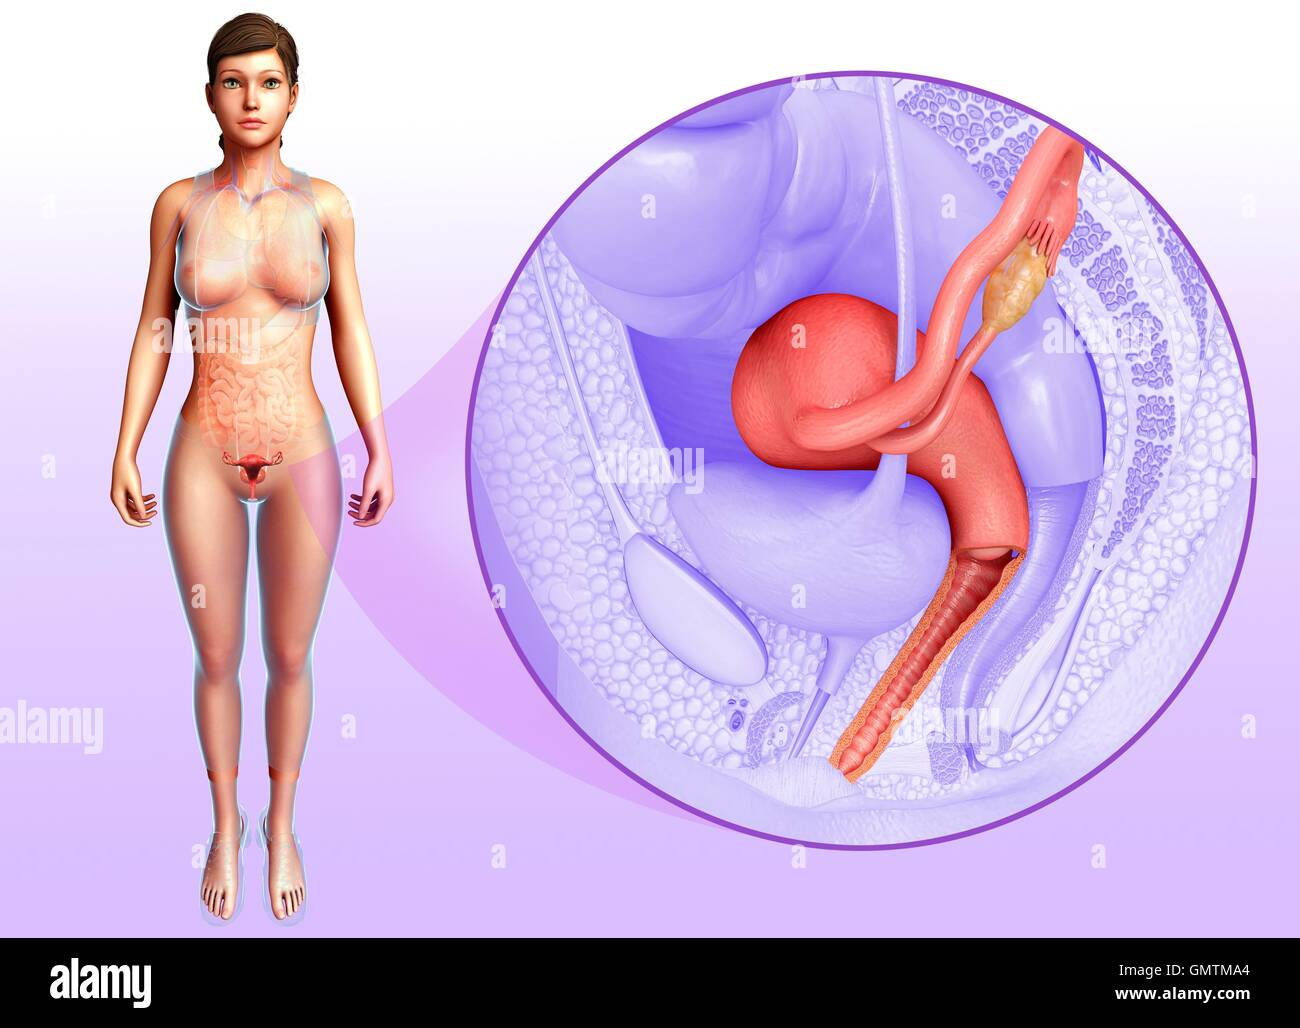 Female Reproductive System High Resolution Stock Photography And Images Alamy